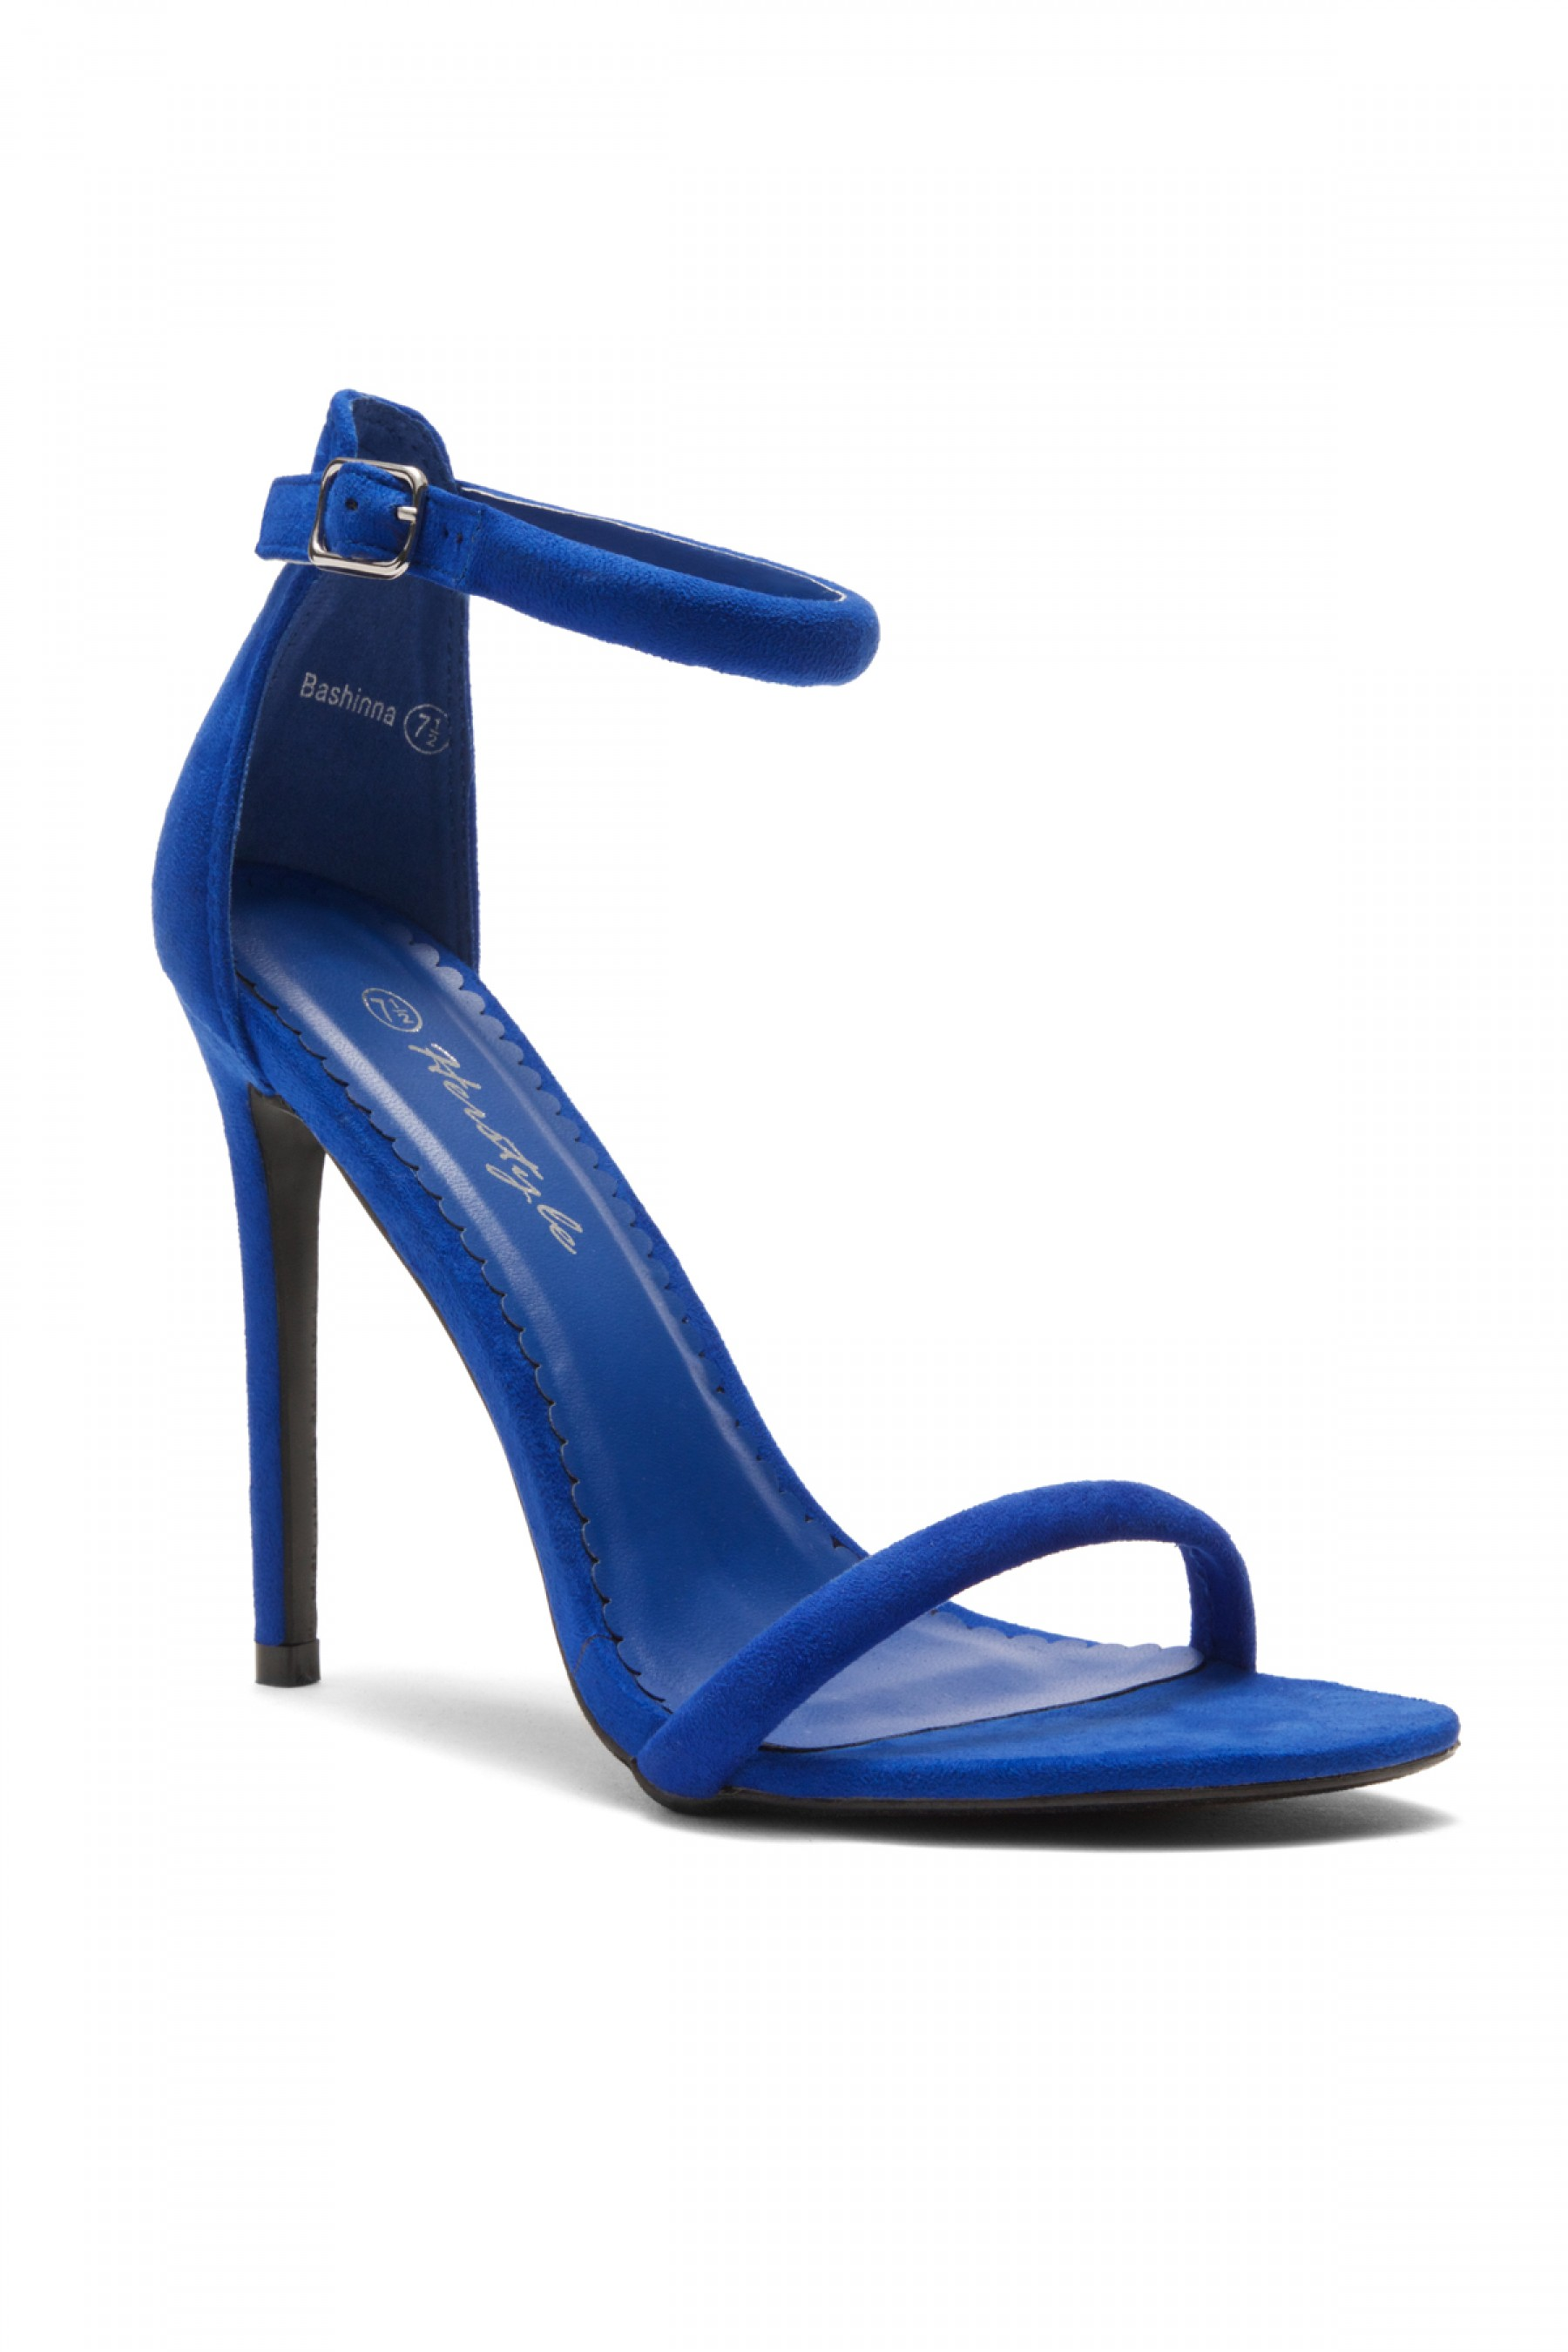 Royal Blue Stiletto Heels laIRjcbJ